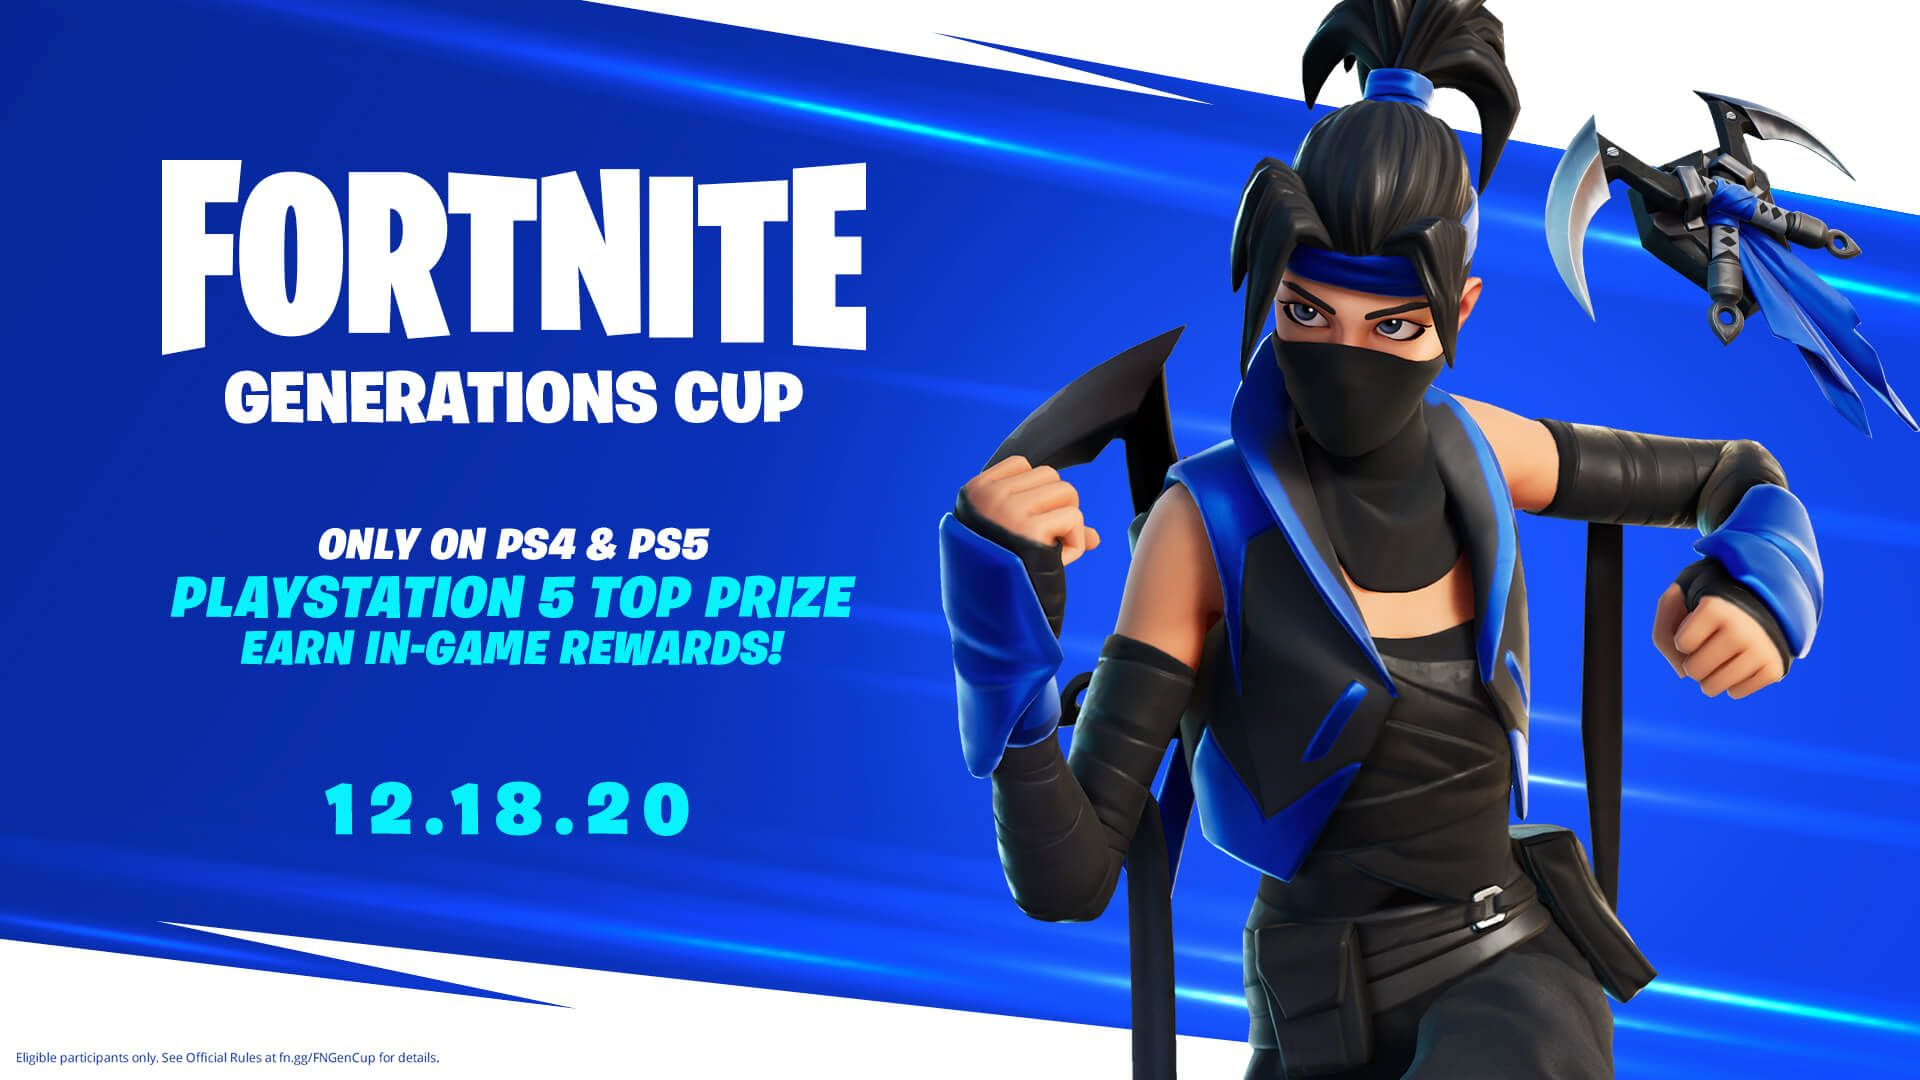 fortnite-generations-cup-can-take-area-december-eighteen,-distinctive-to-ps4-&-ps5